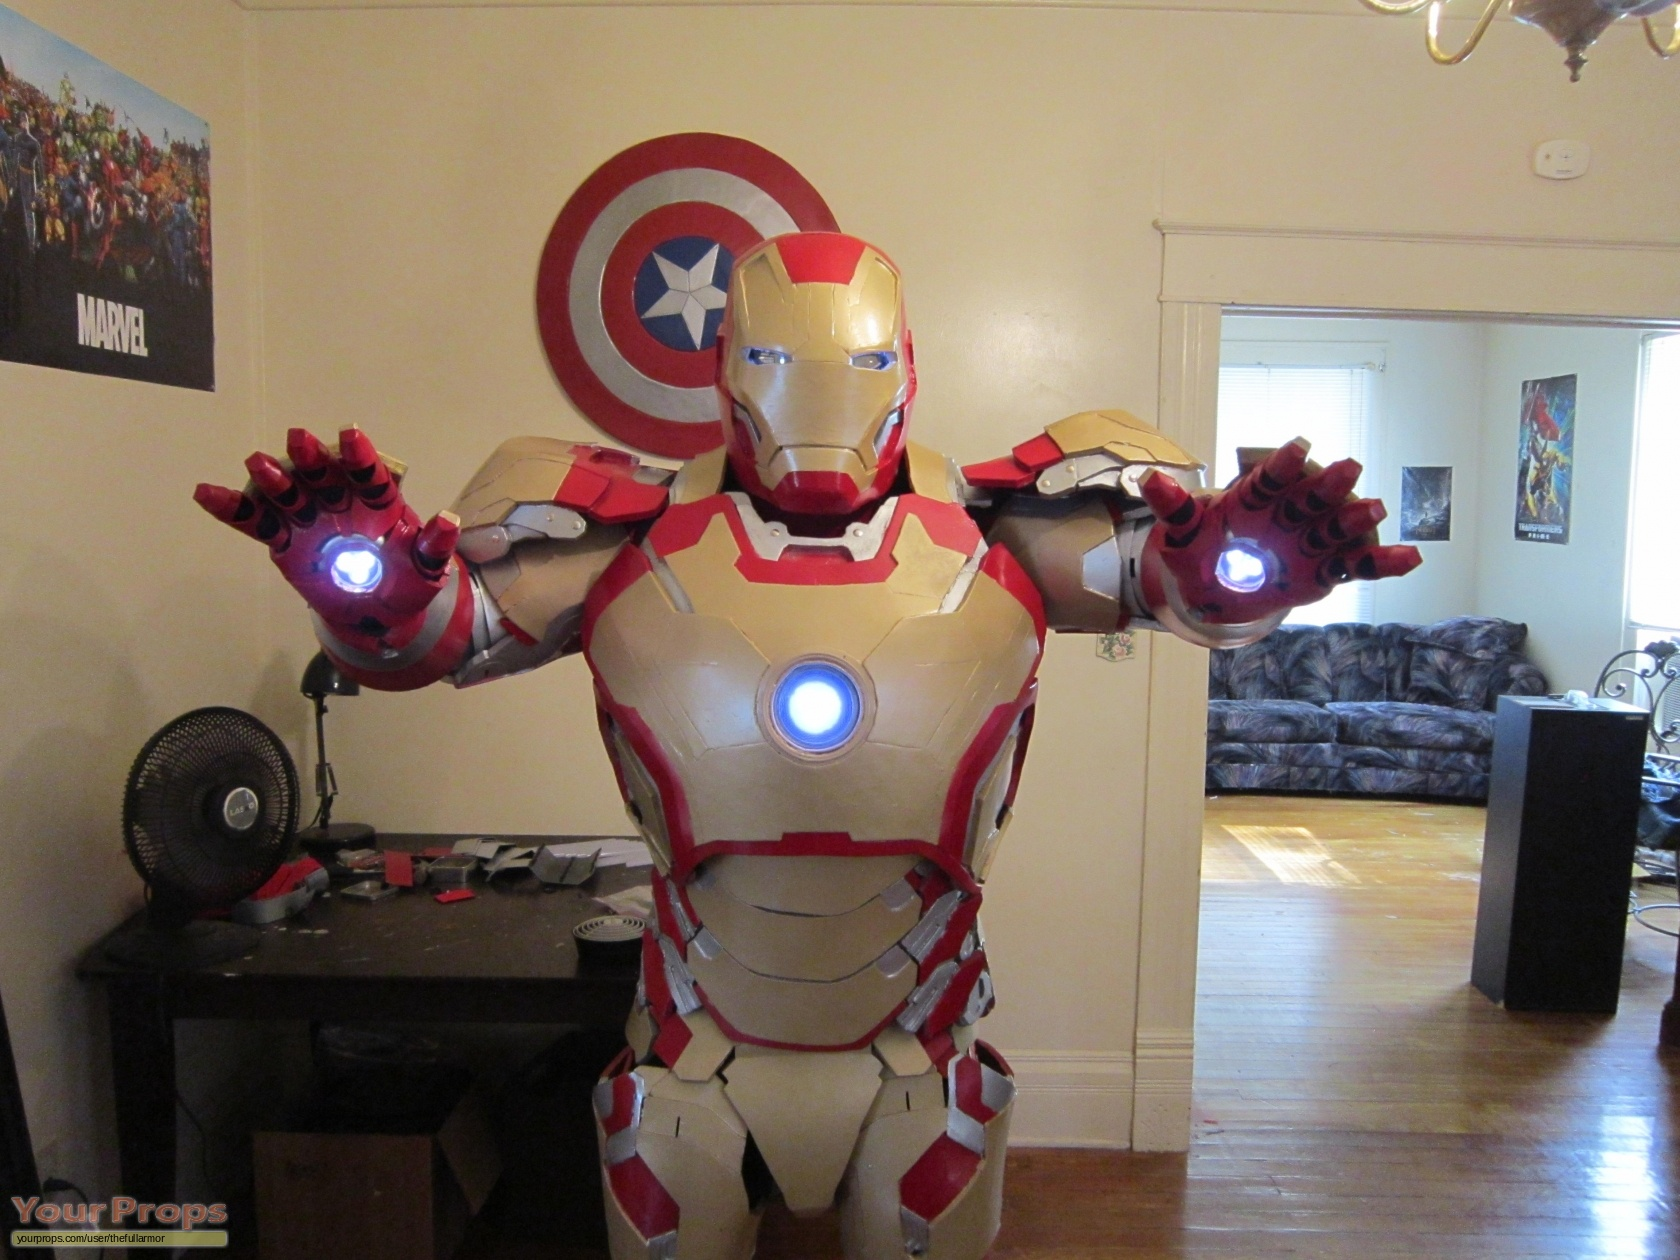 Iron Man 3 Men's Large Mark 42 Armor Replica Costume made ...